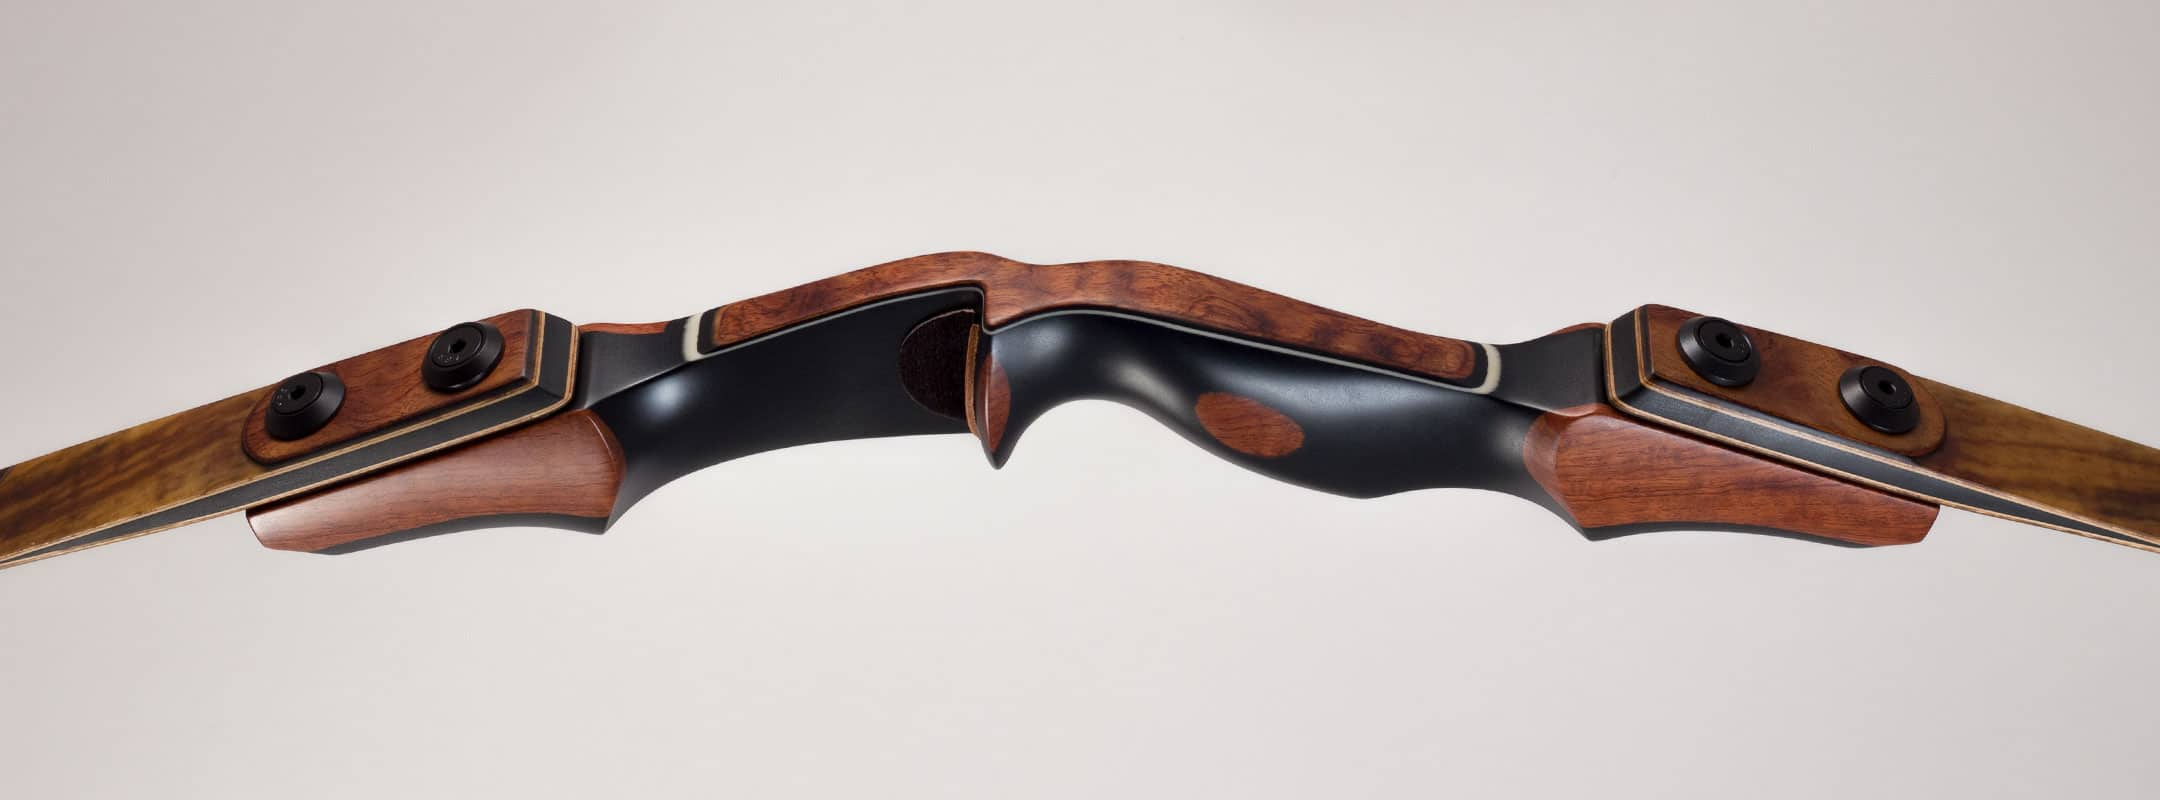 Bow handle of handcrafted recurve bow